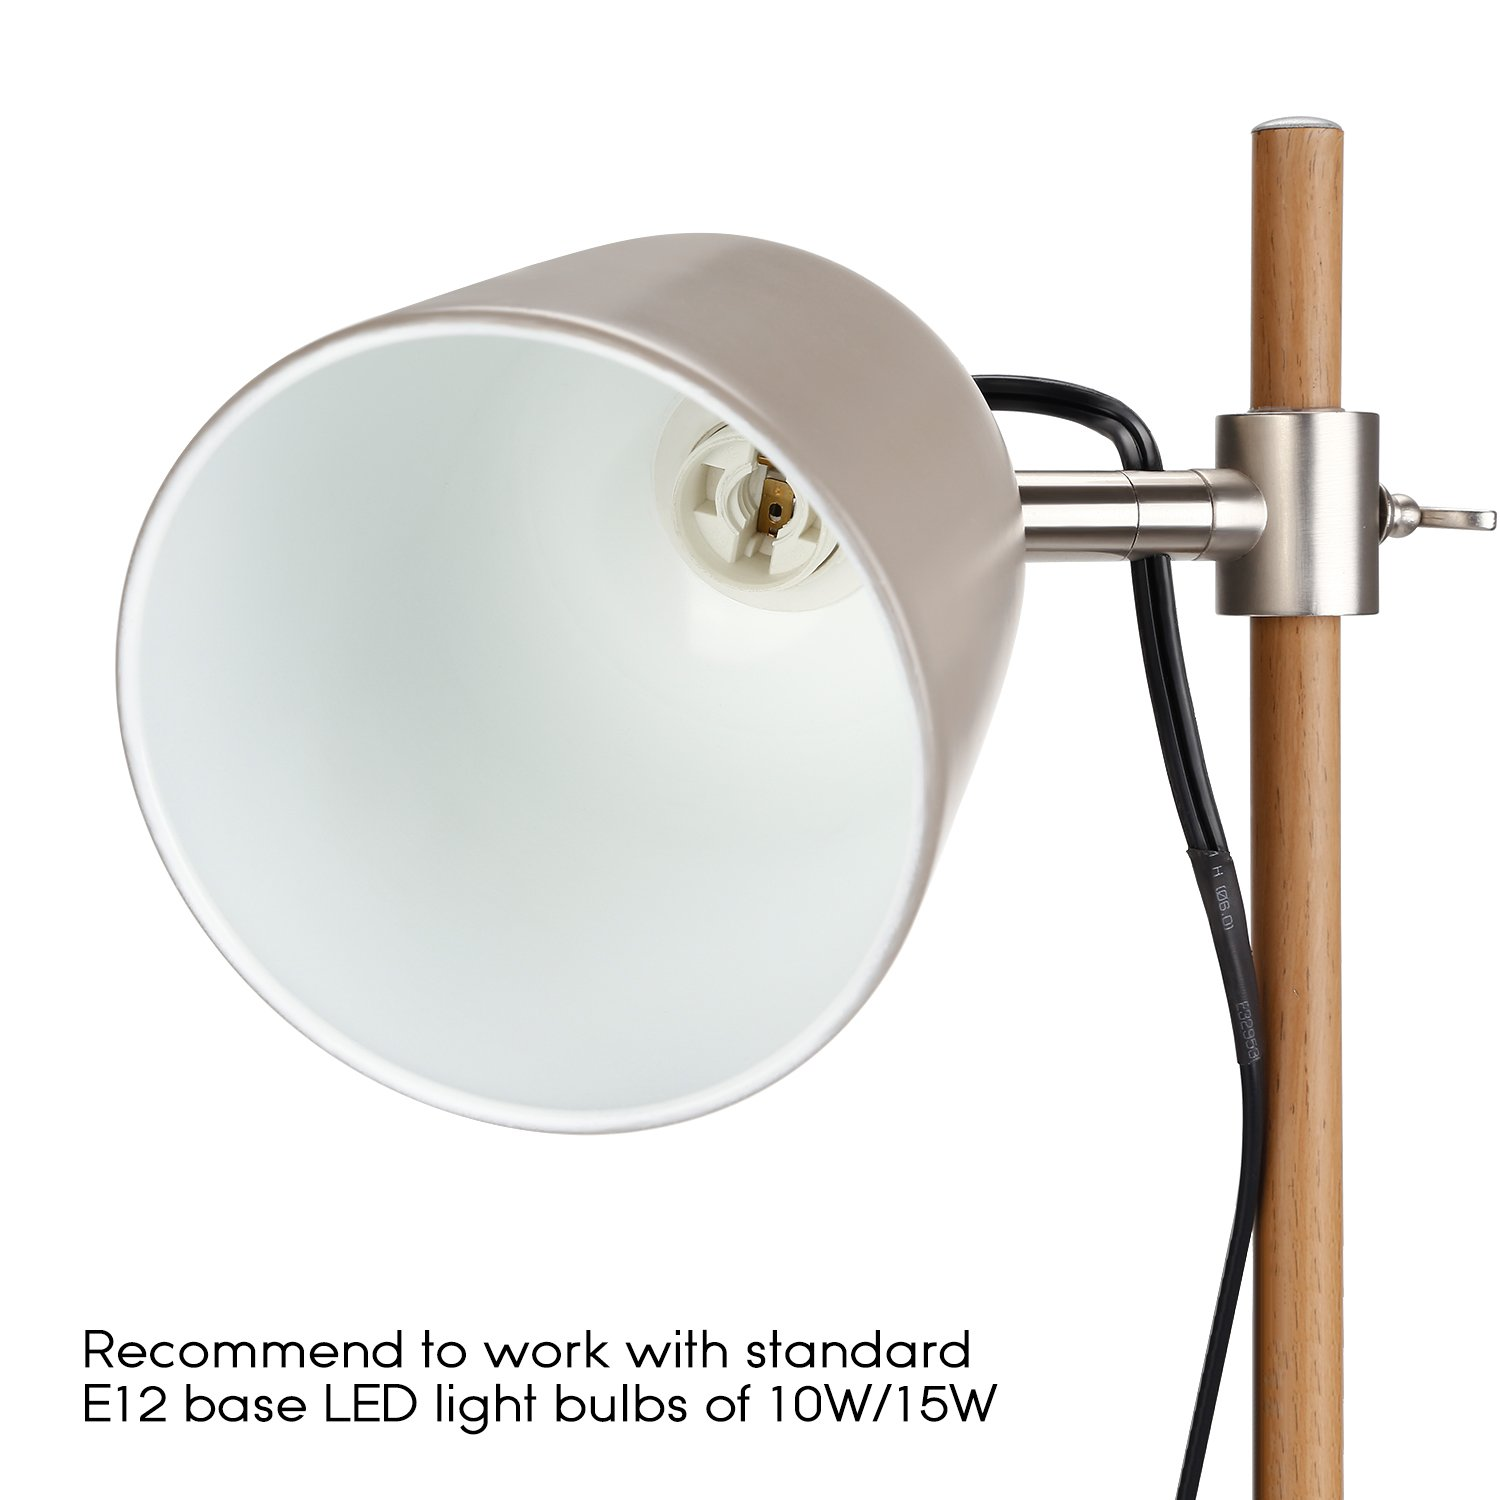 TORCHSTAR Stylish Metal Desk Lamp with E12 Socket, UL Certified Cable Cord, Adjustable Gray Steel Shade Table Light with Wood Grain Finish Iron Pole, Reading Office Study Studio Work Lighting